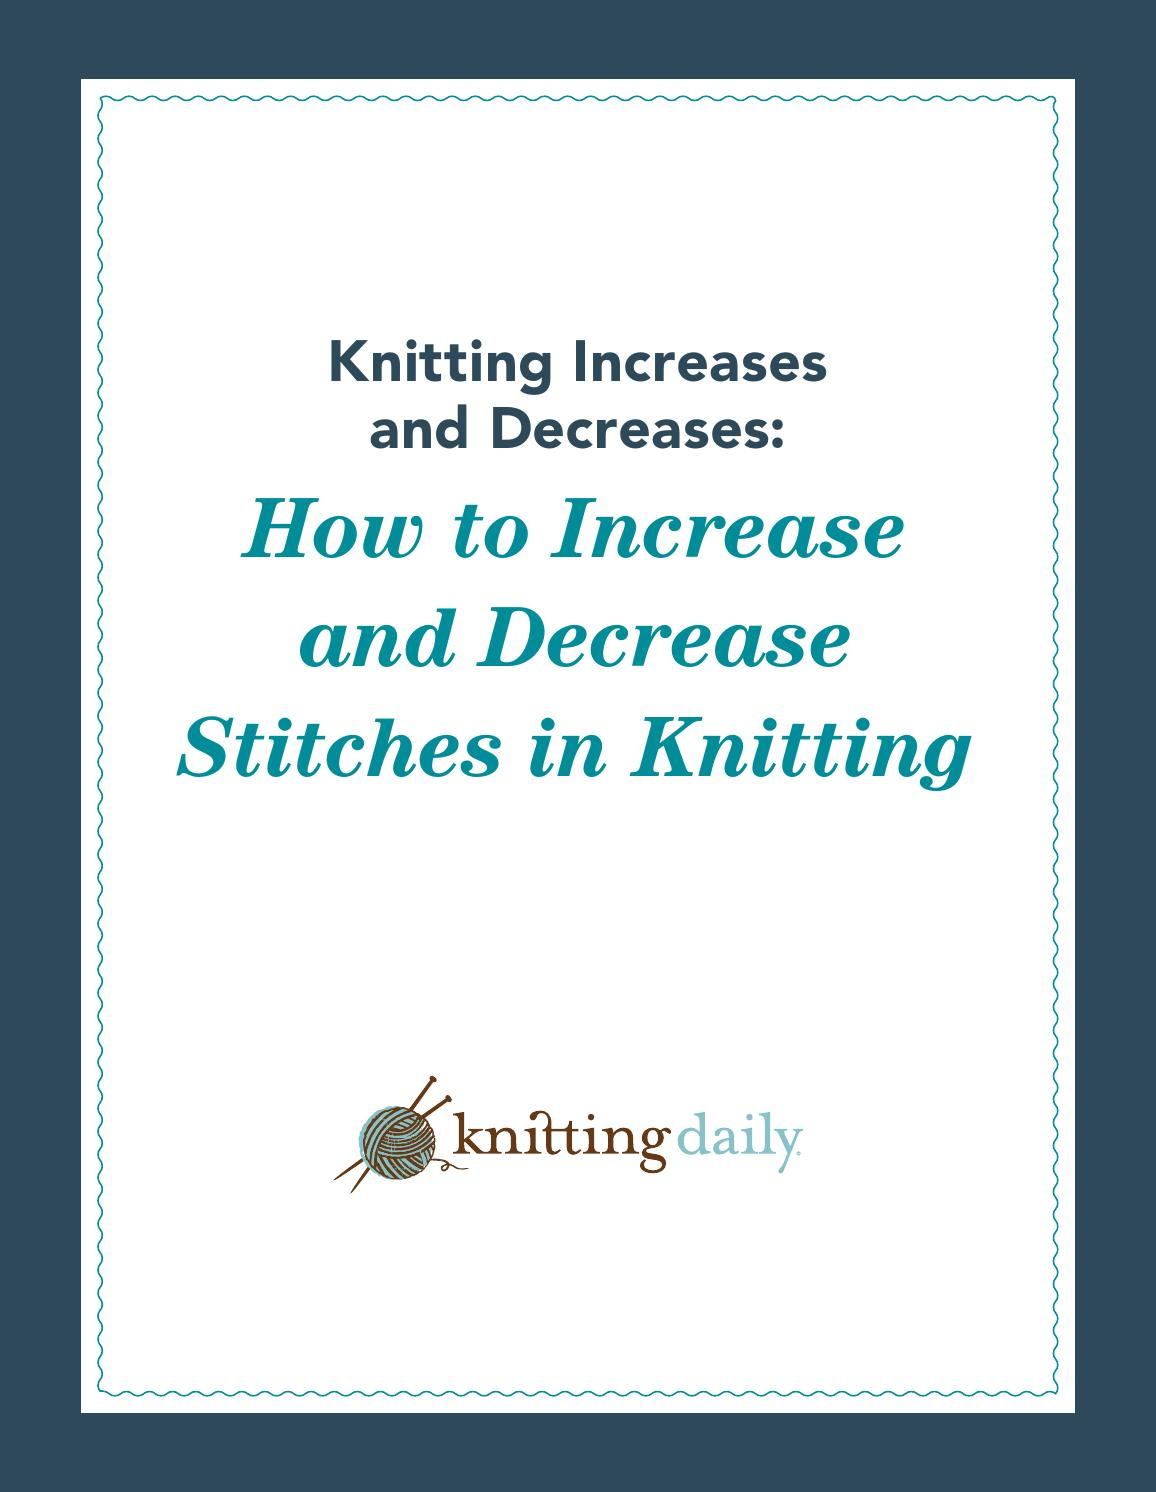 Knitting Help Increases : Knitting increases and decreases by jasmina sizz issuu